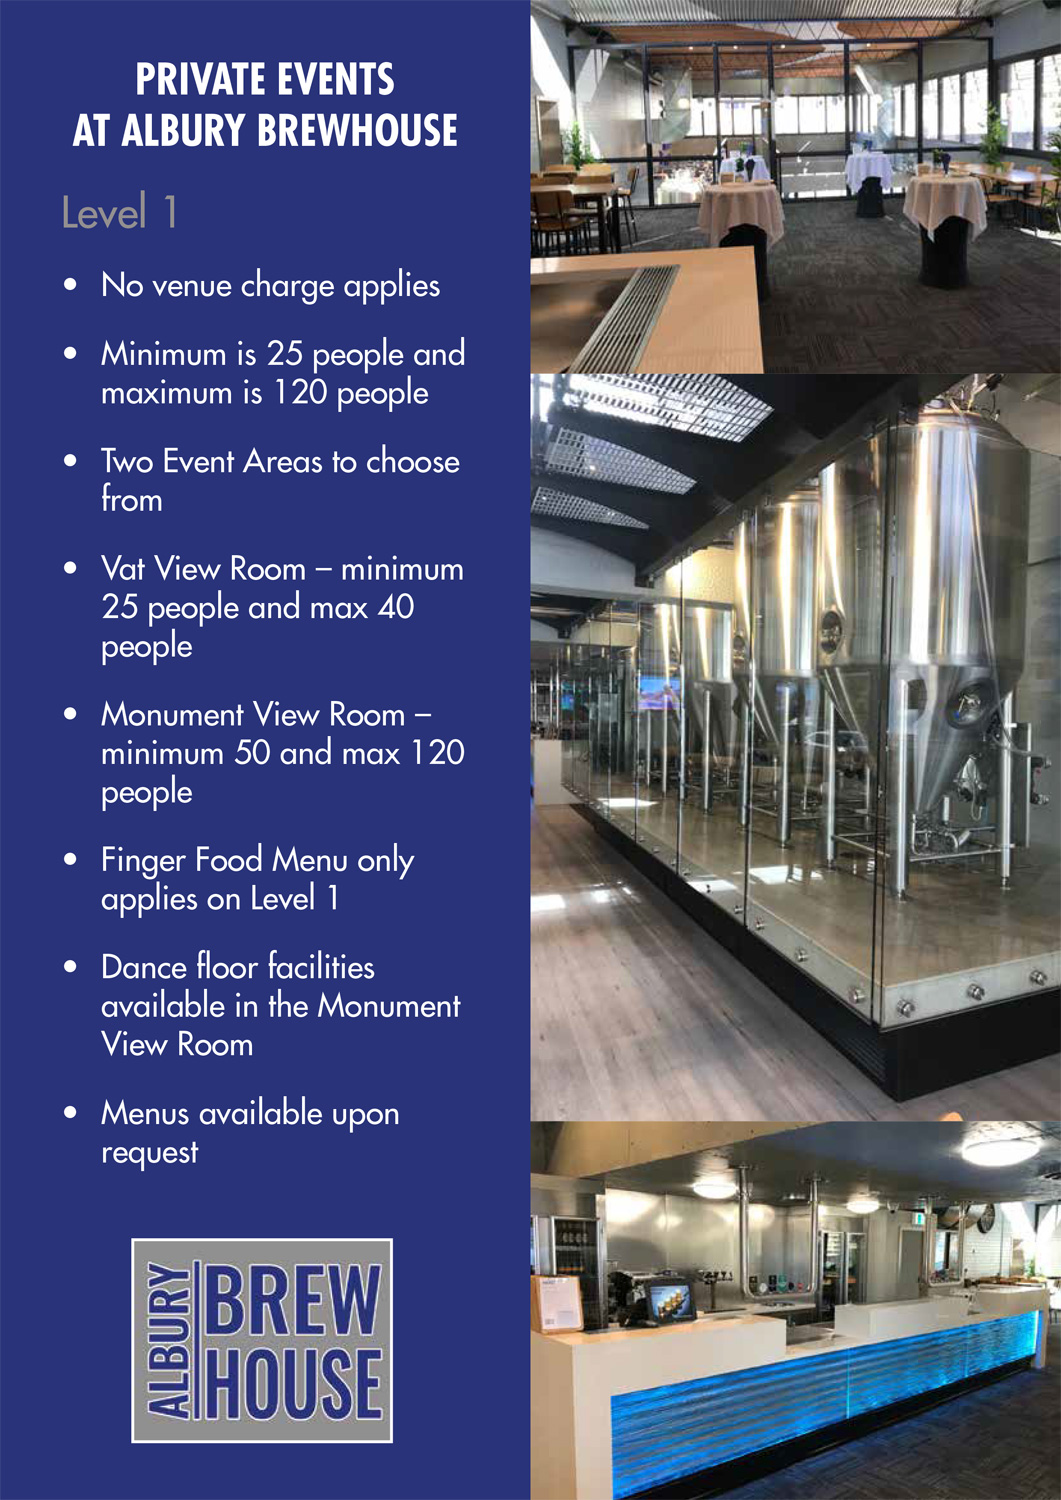 P4_Albury-Brewhouse-Events-Booklet-201903.jpg